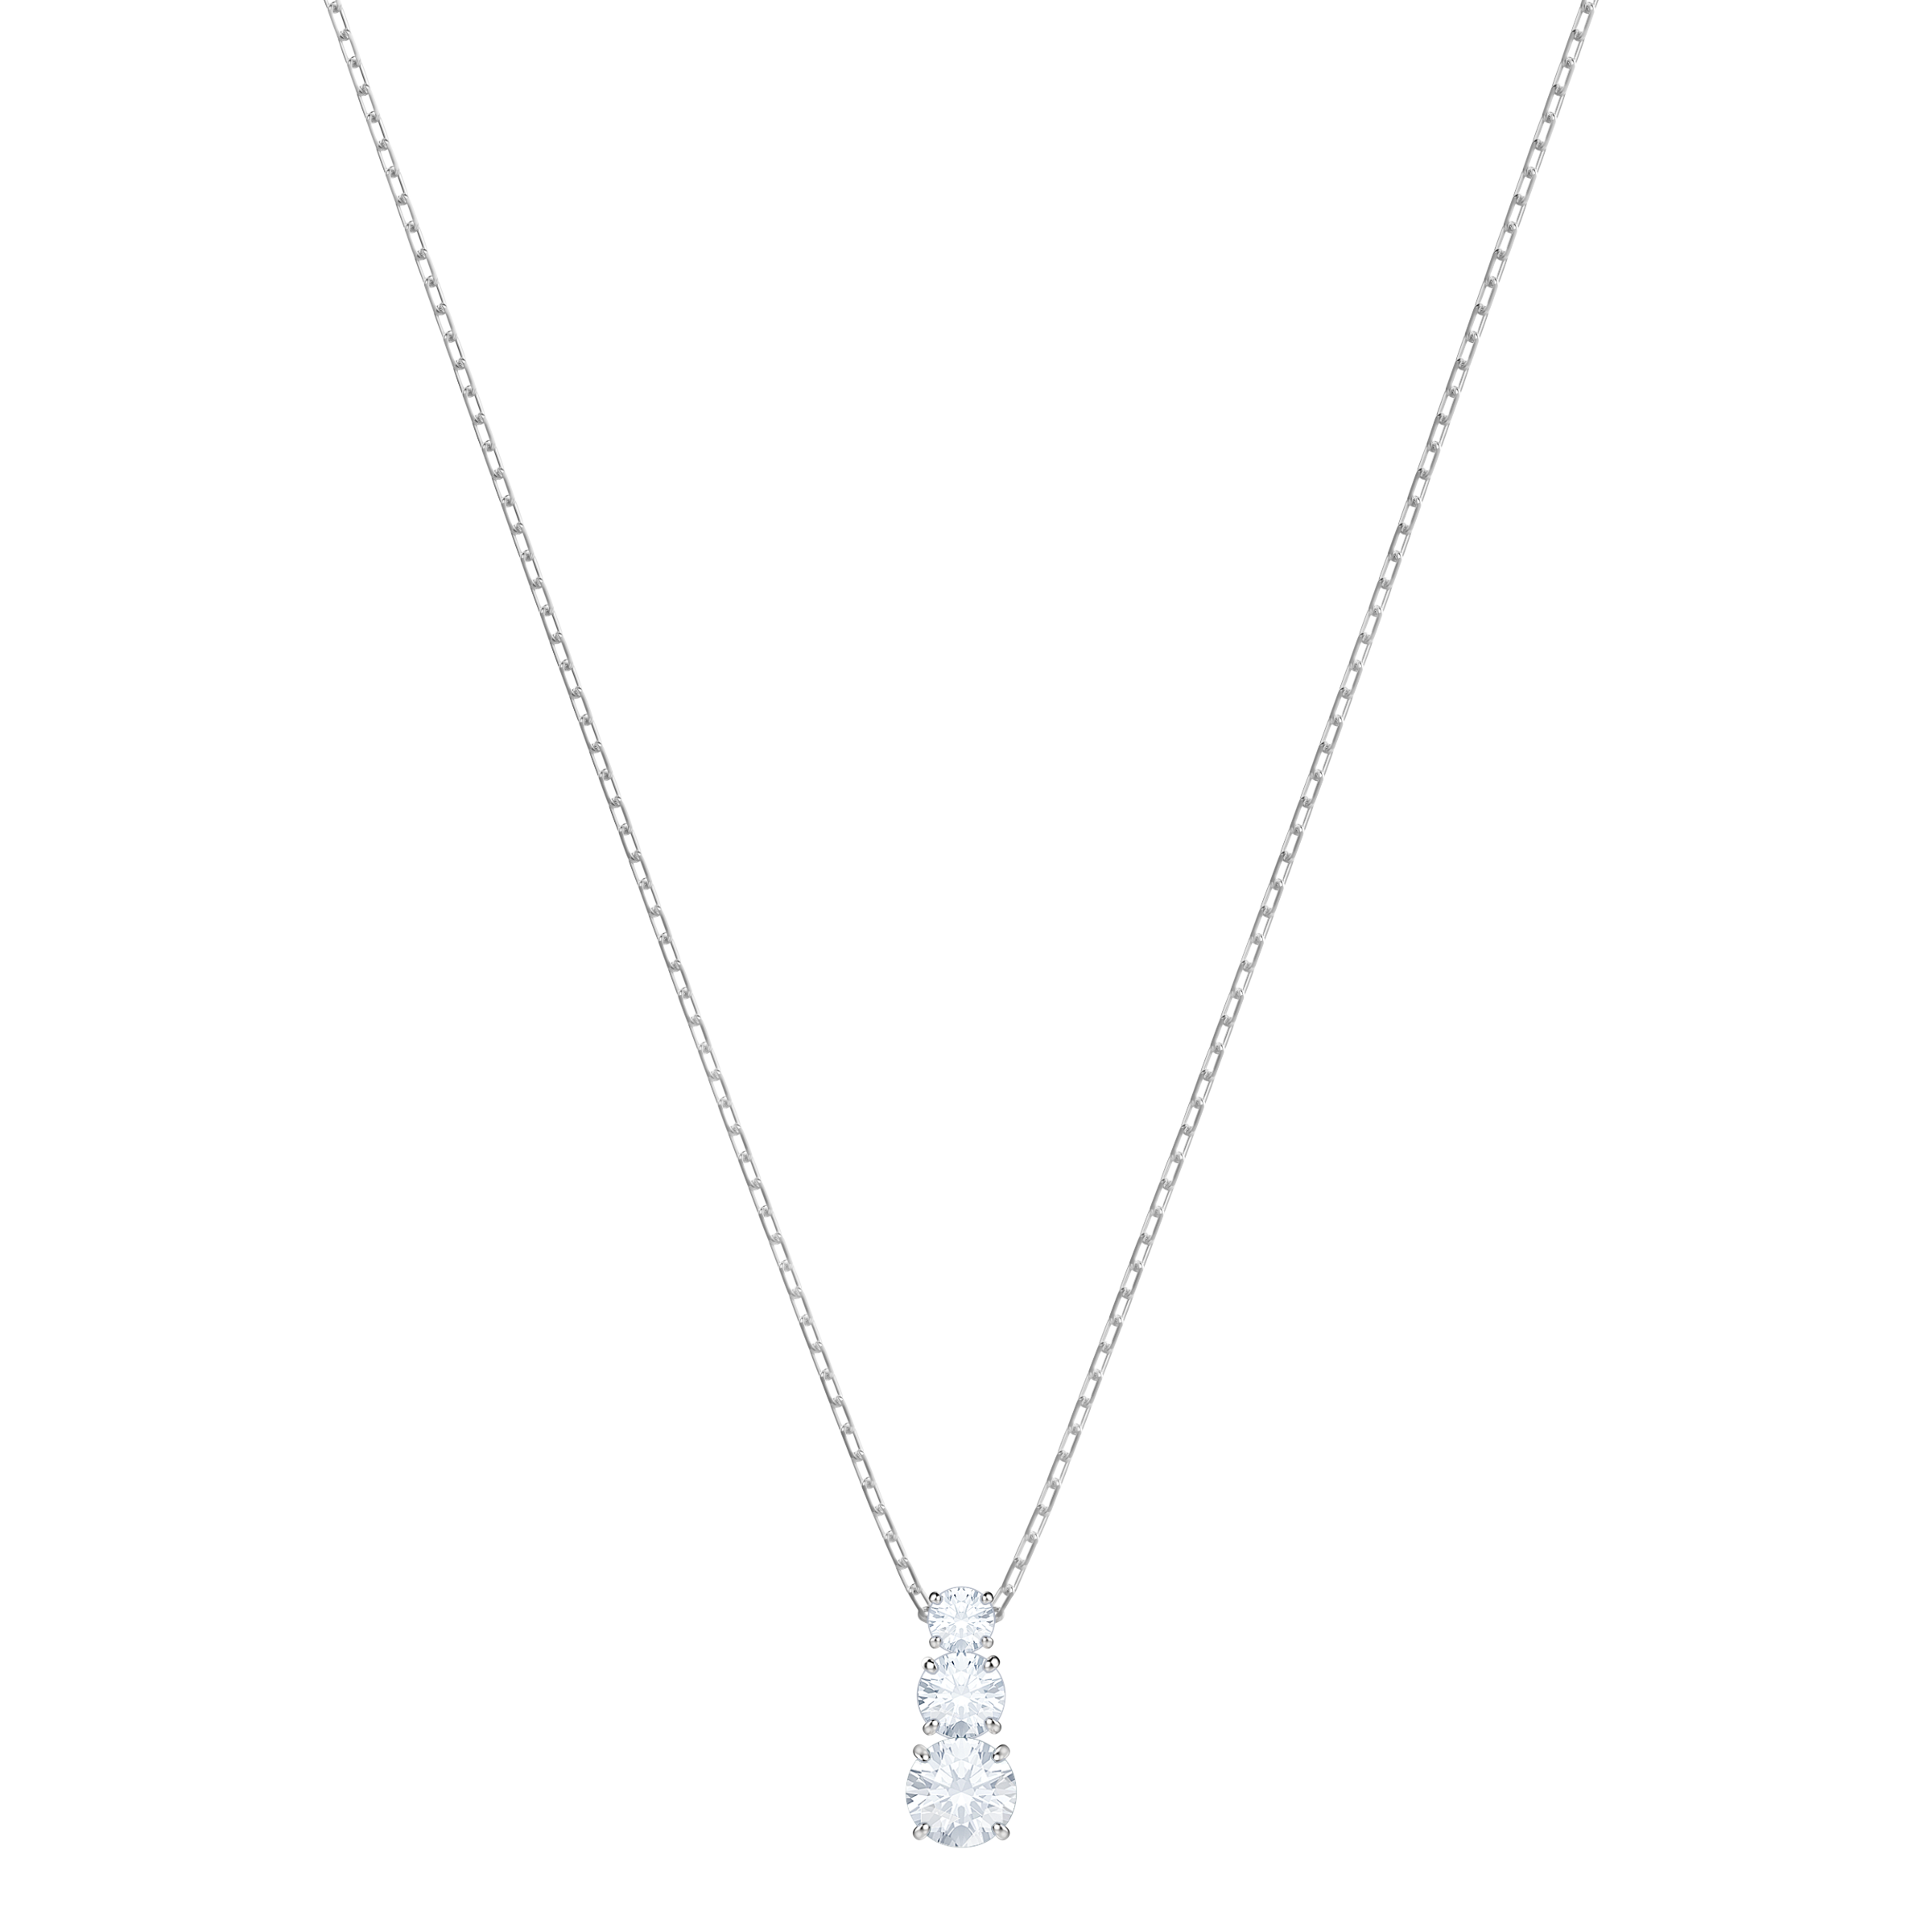 Attract Trilogy Round Pendant, White, Rhodium Plating